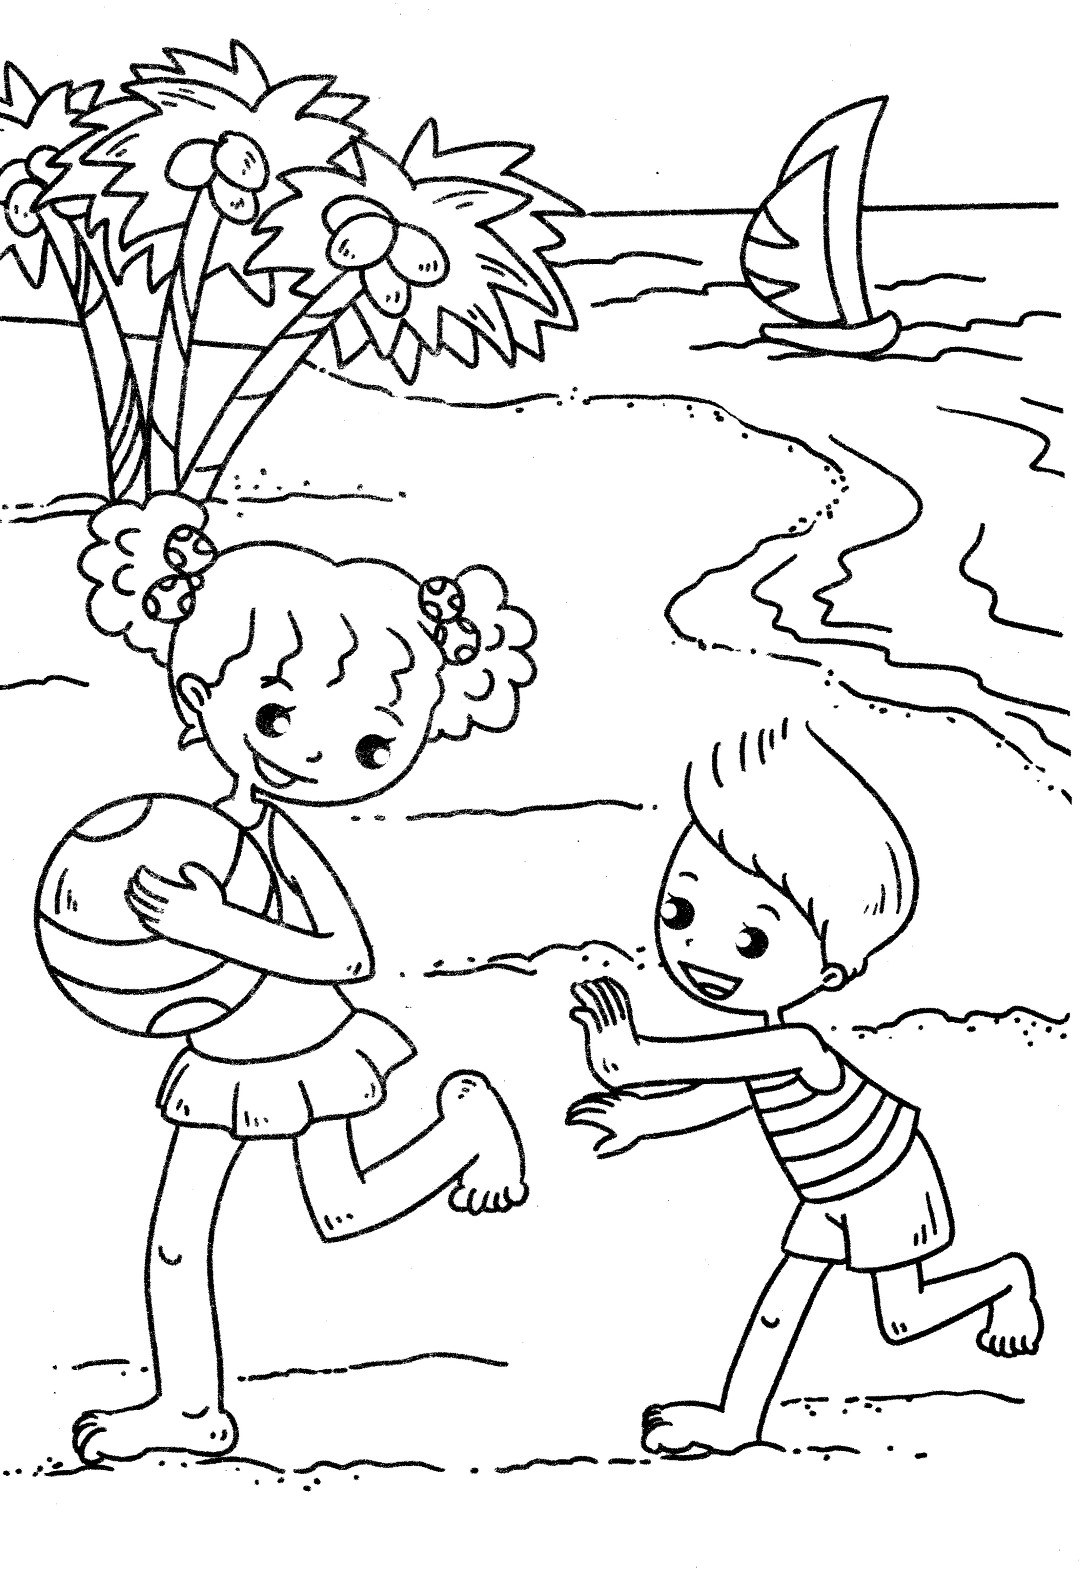 Beach Fun Coloring Page